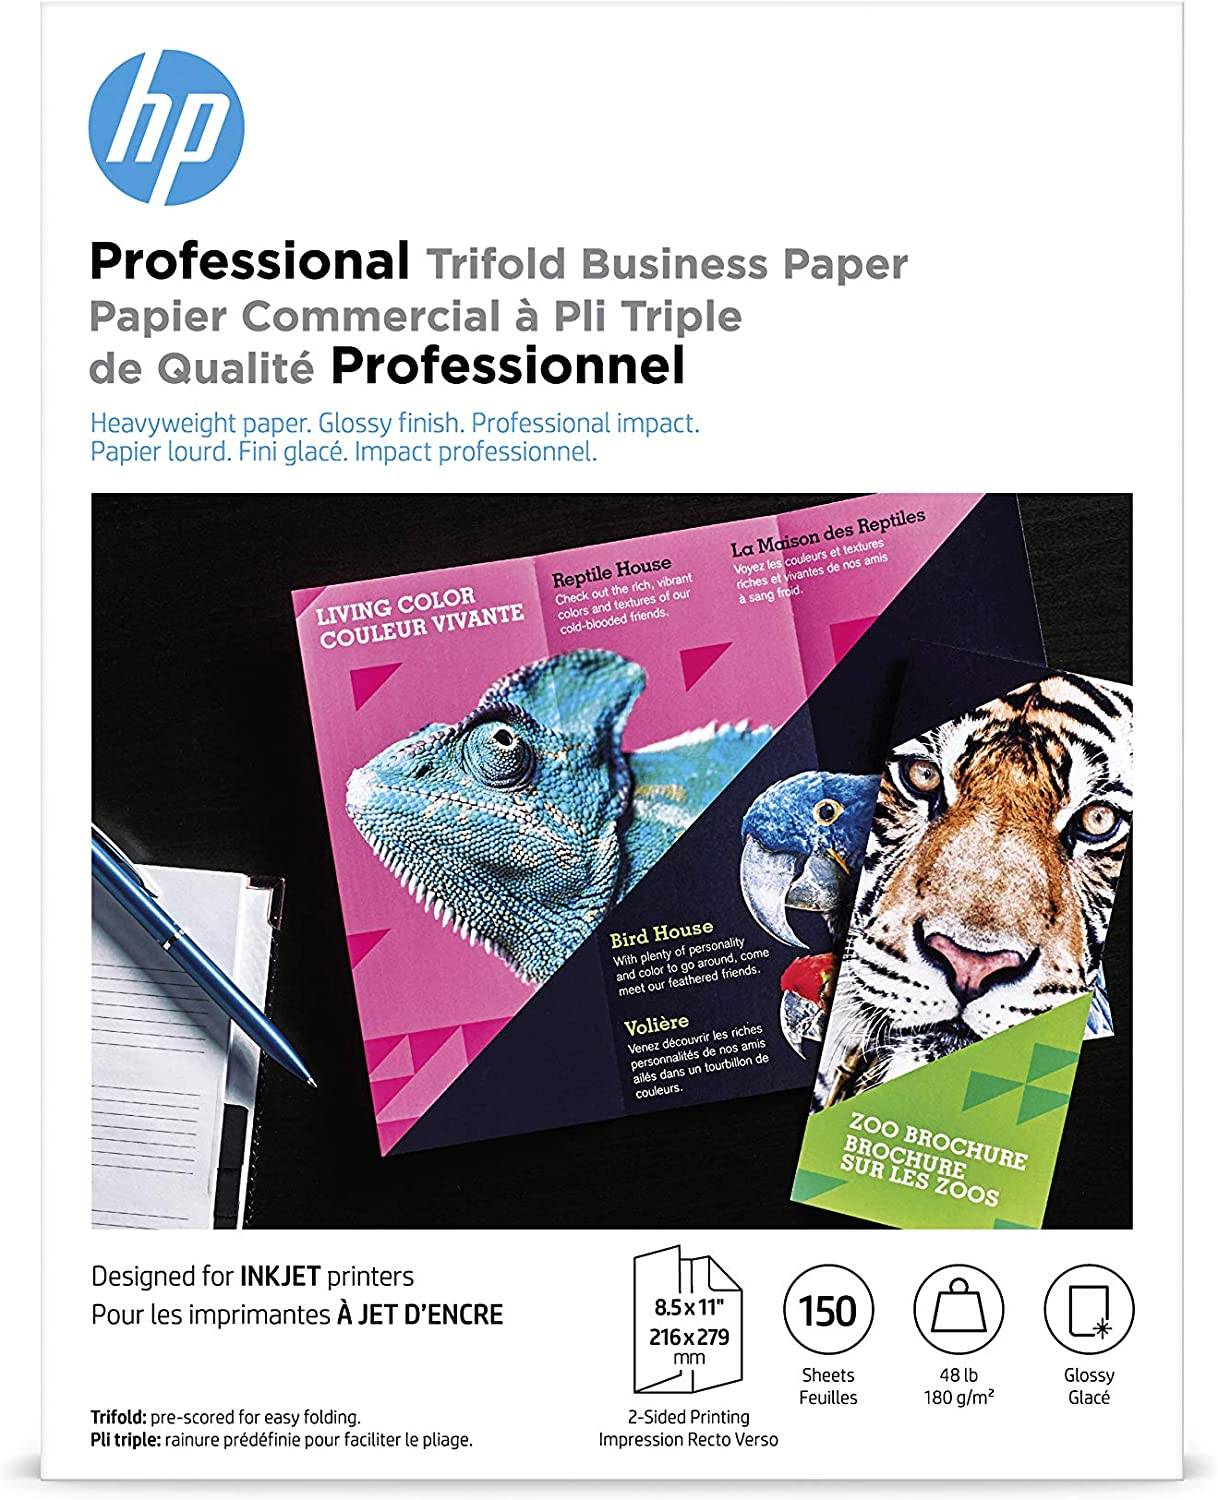 HP Brochure Paper |Glossy Professional Trifold Inkjet| 8.5x11 | 150 Sheets